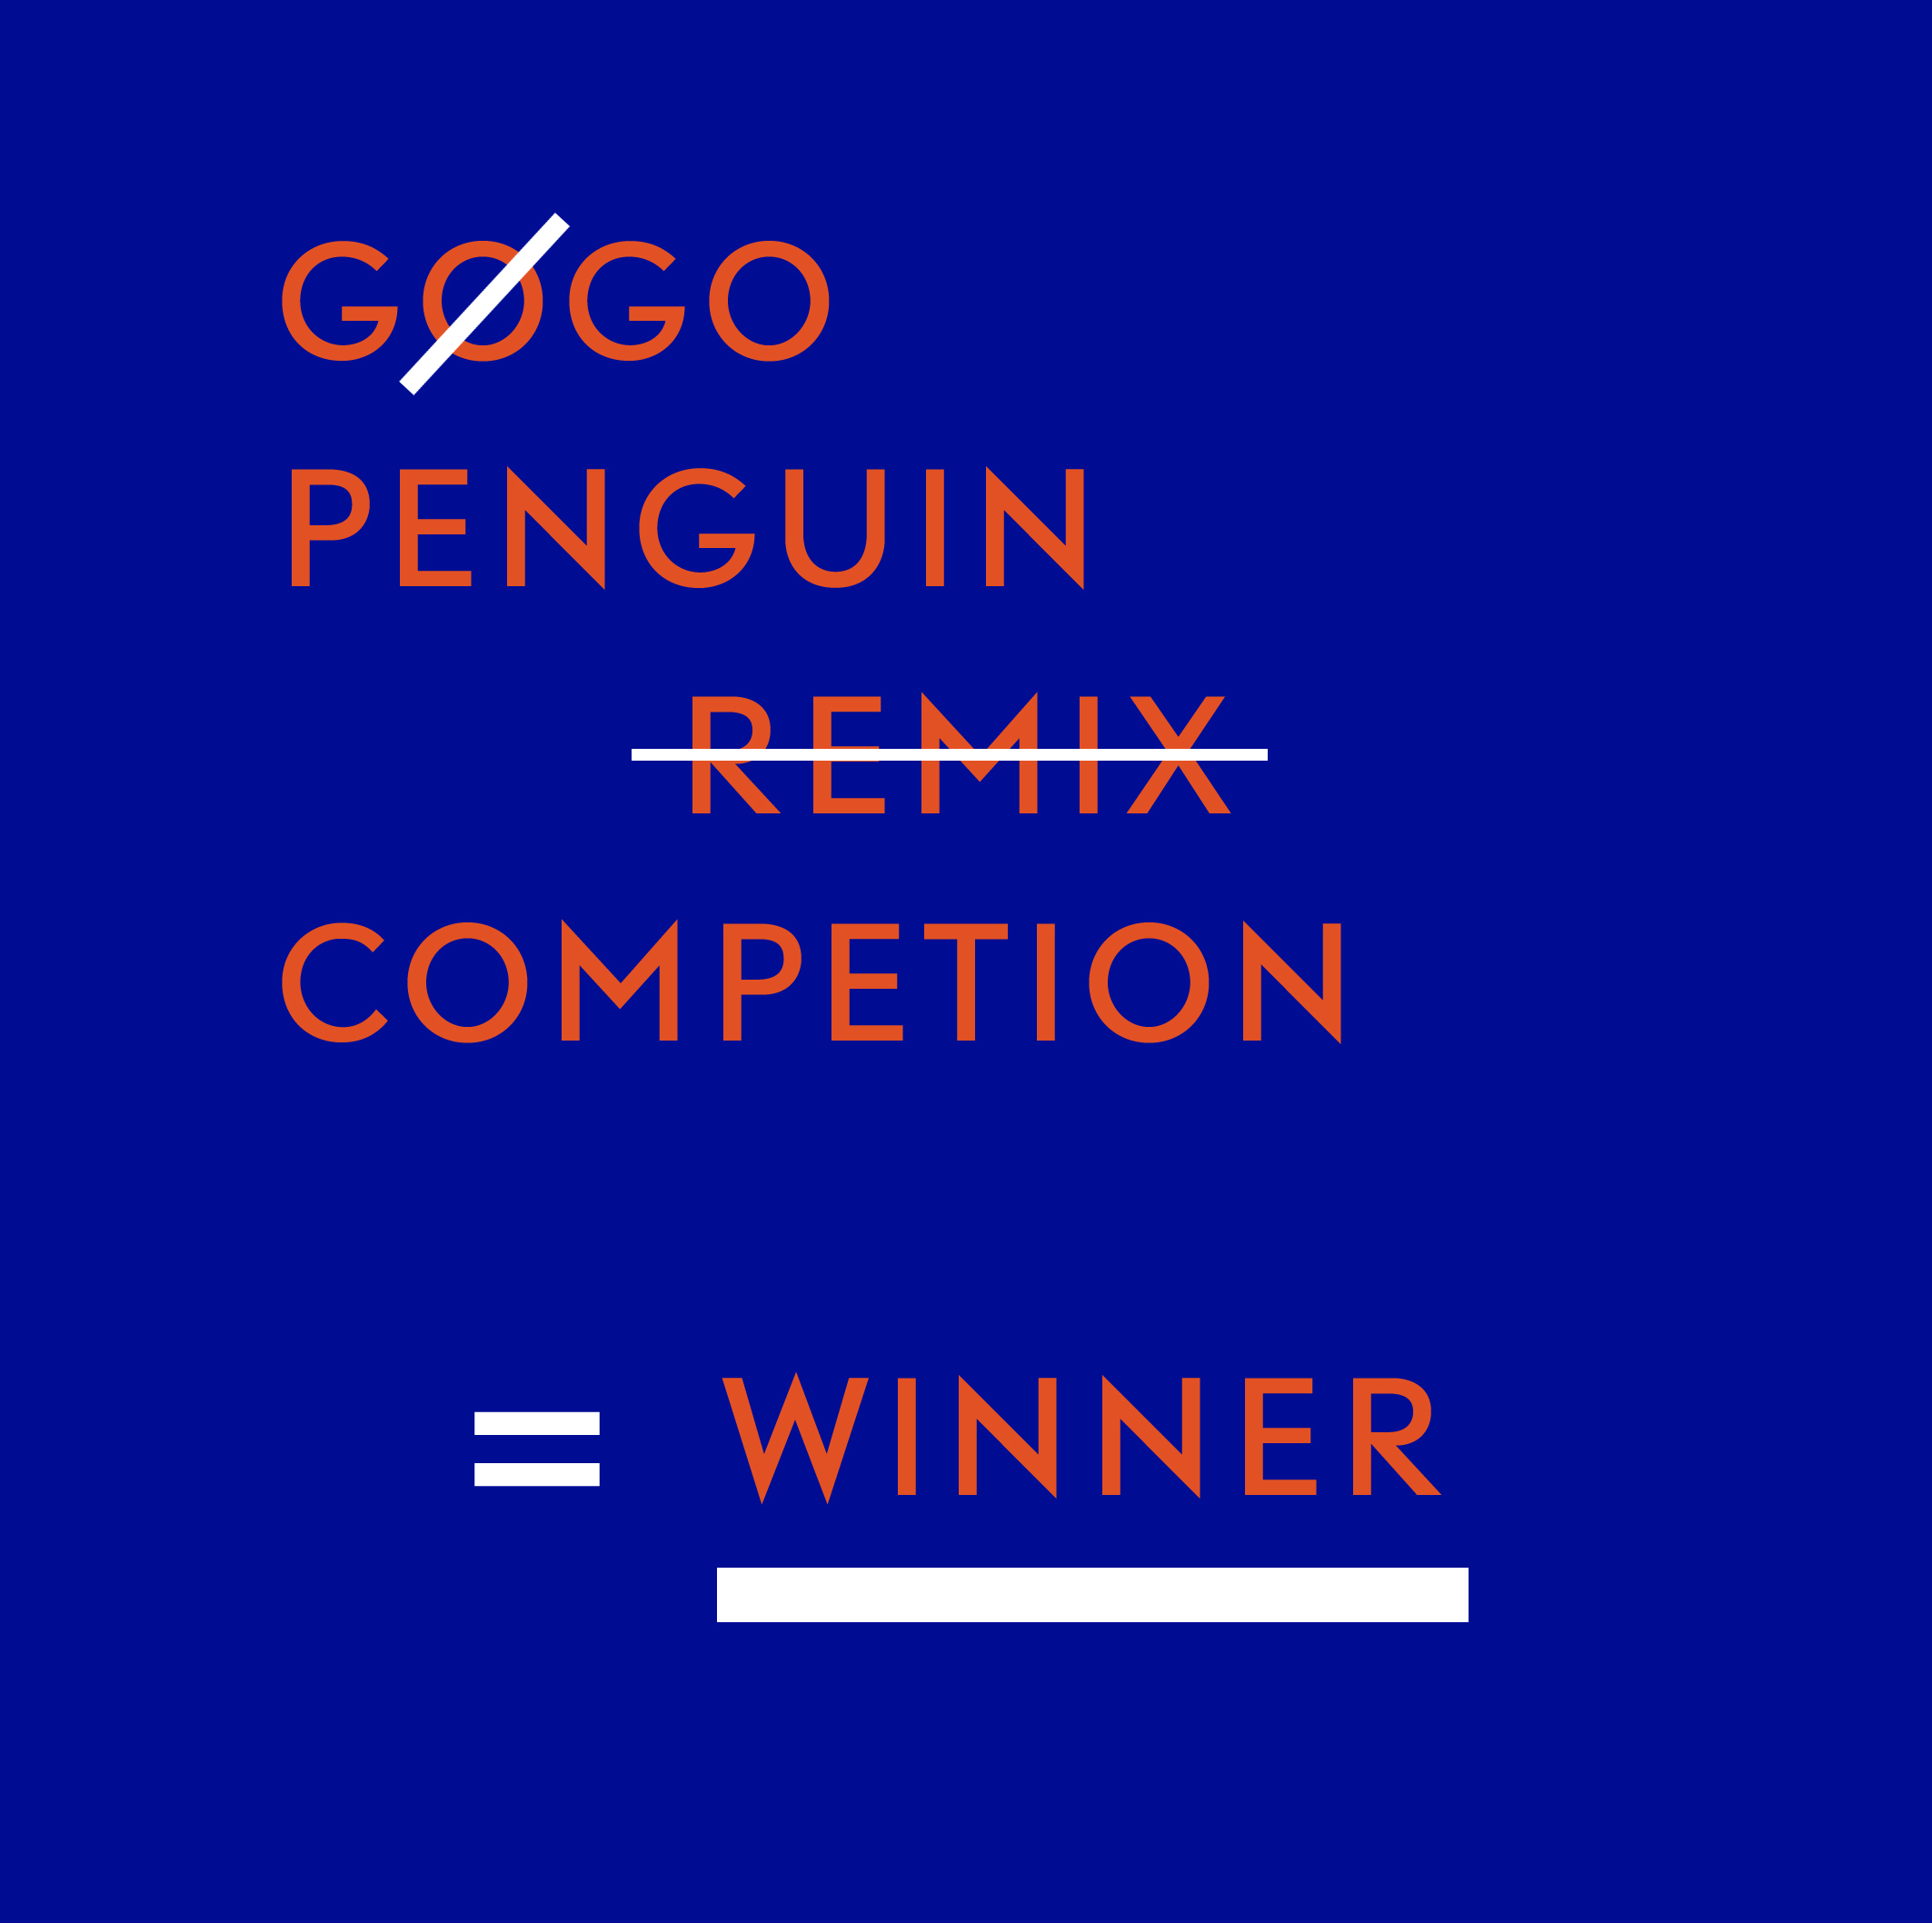 GoGo Penguin announce winner of the Fort remix competition